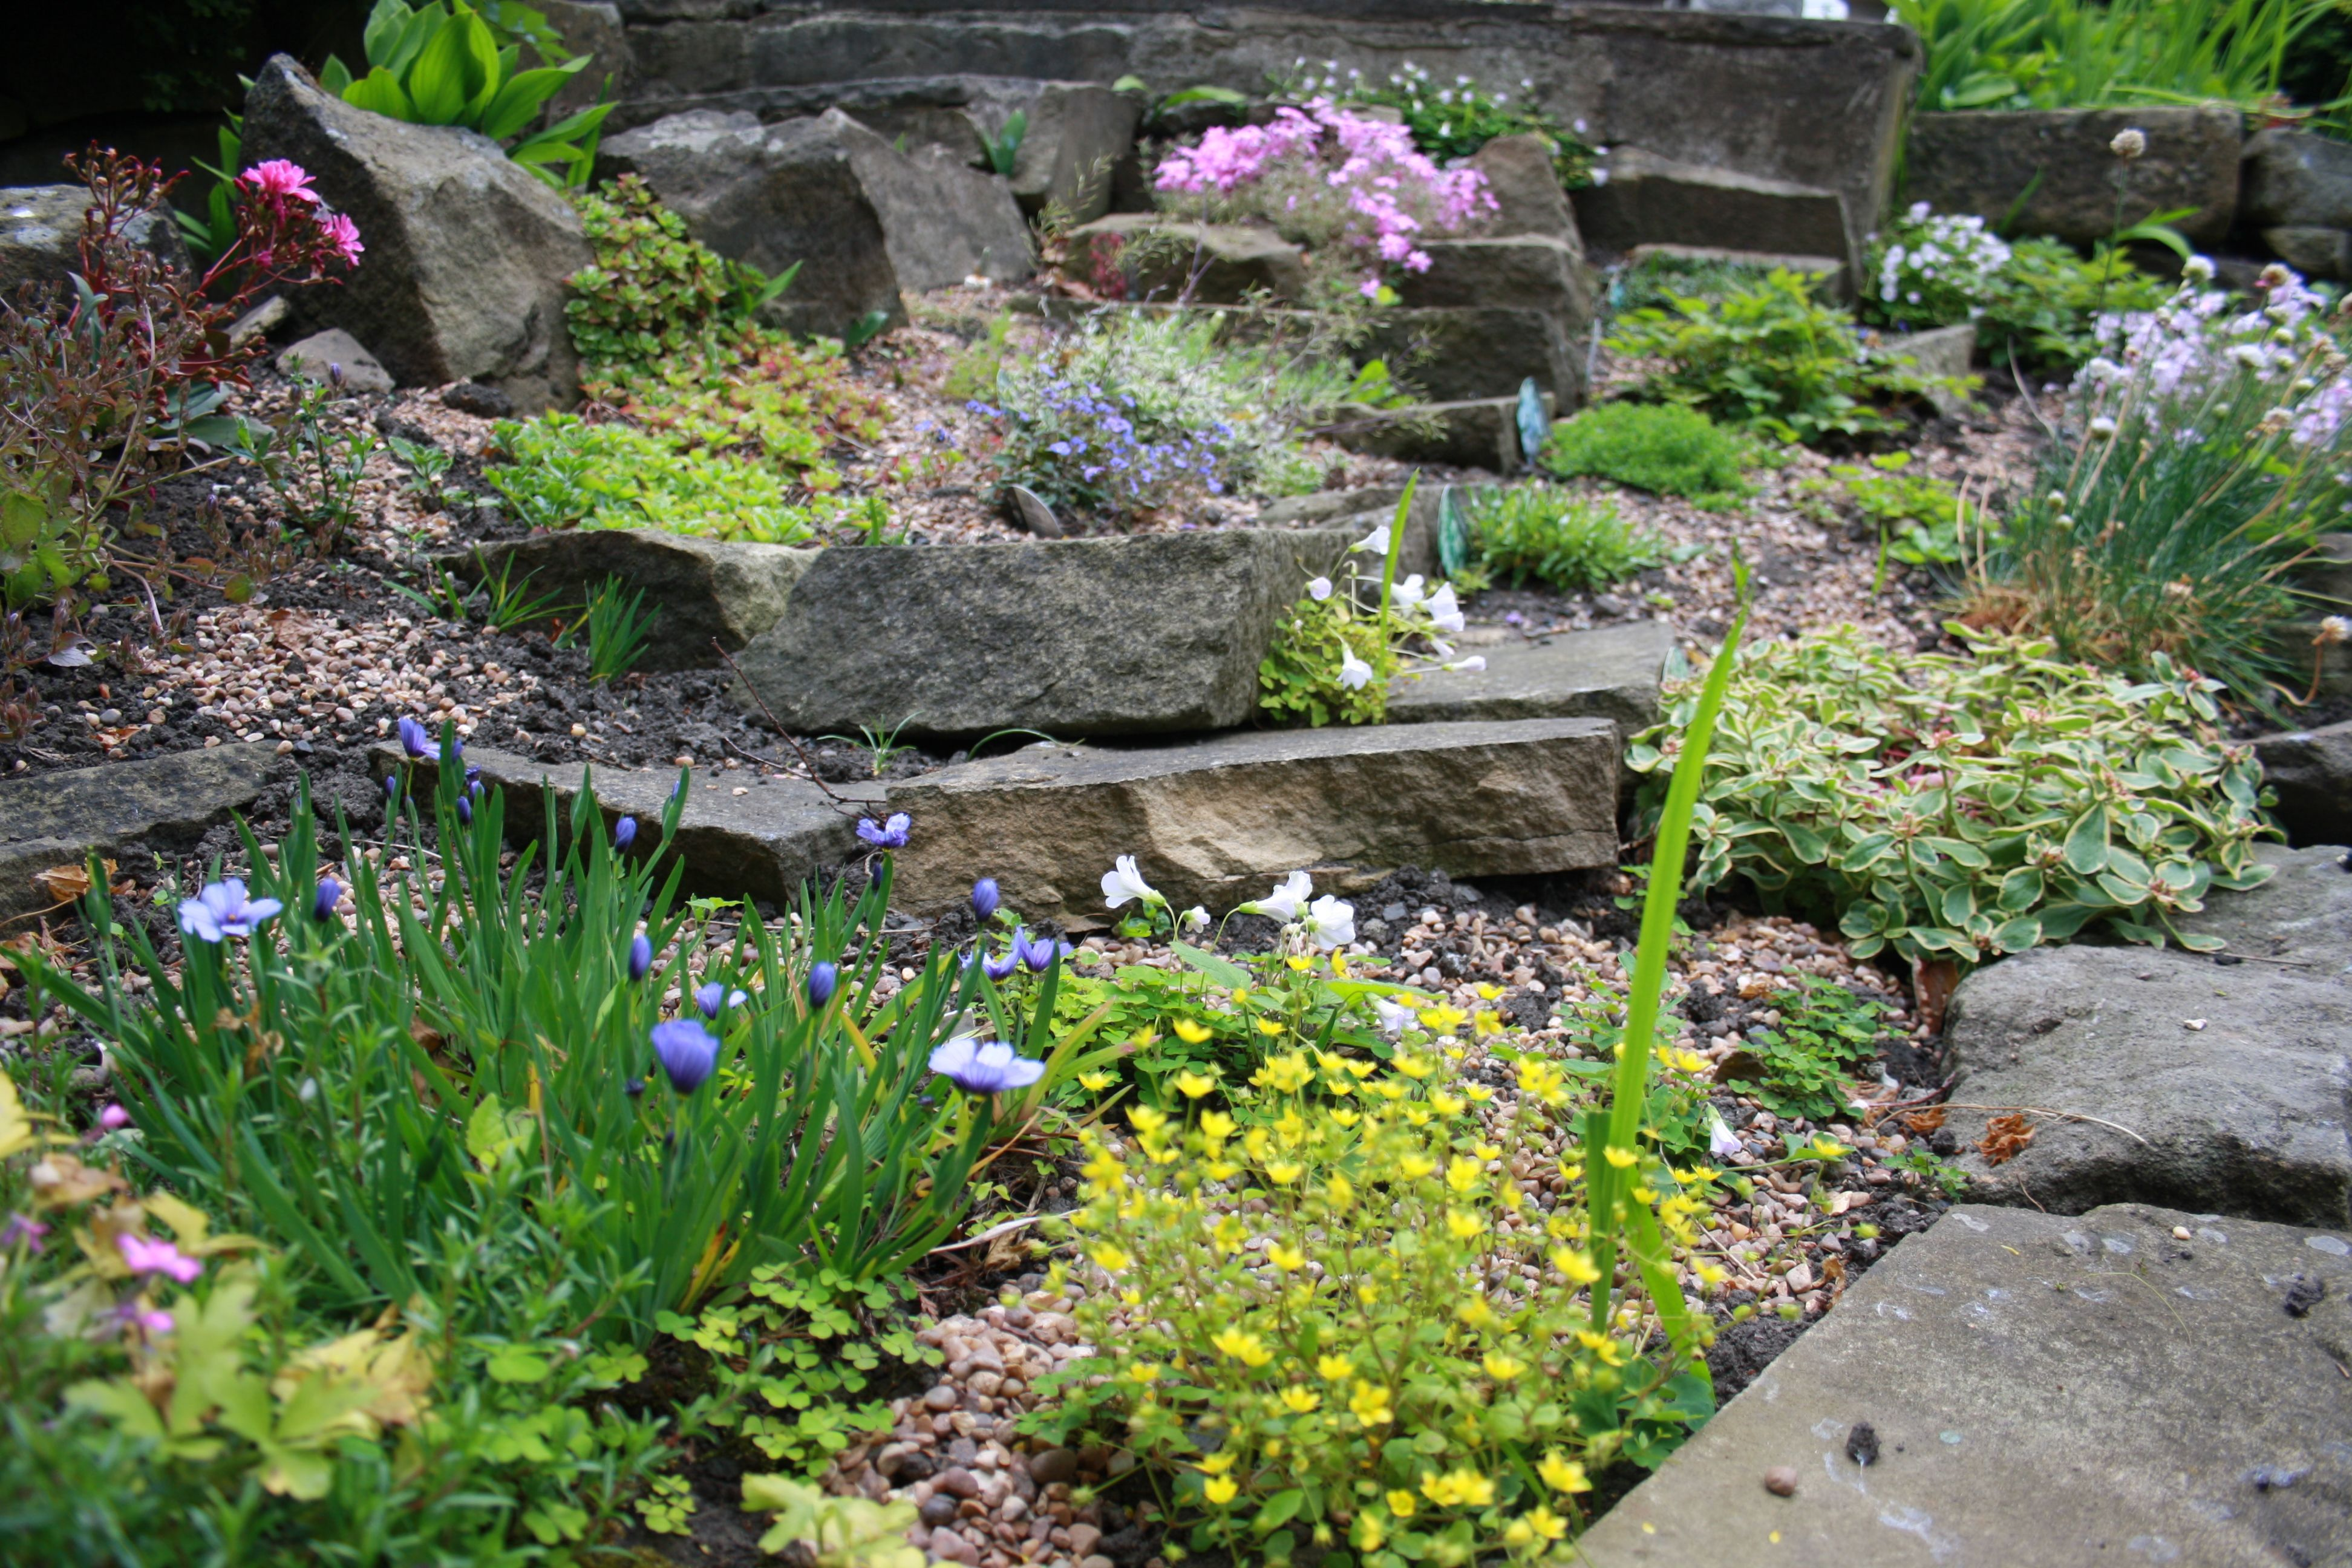 tips for creating a rock garden feature. #rockgarden #alpines #stone #natural #miniature